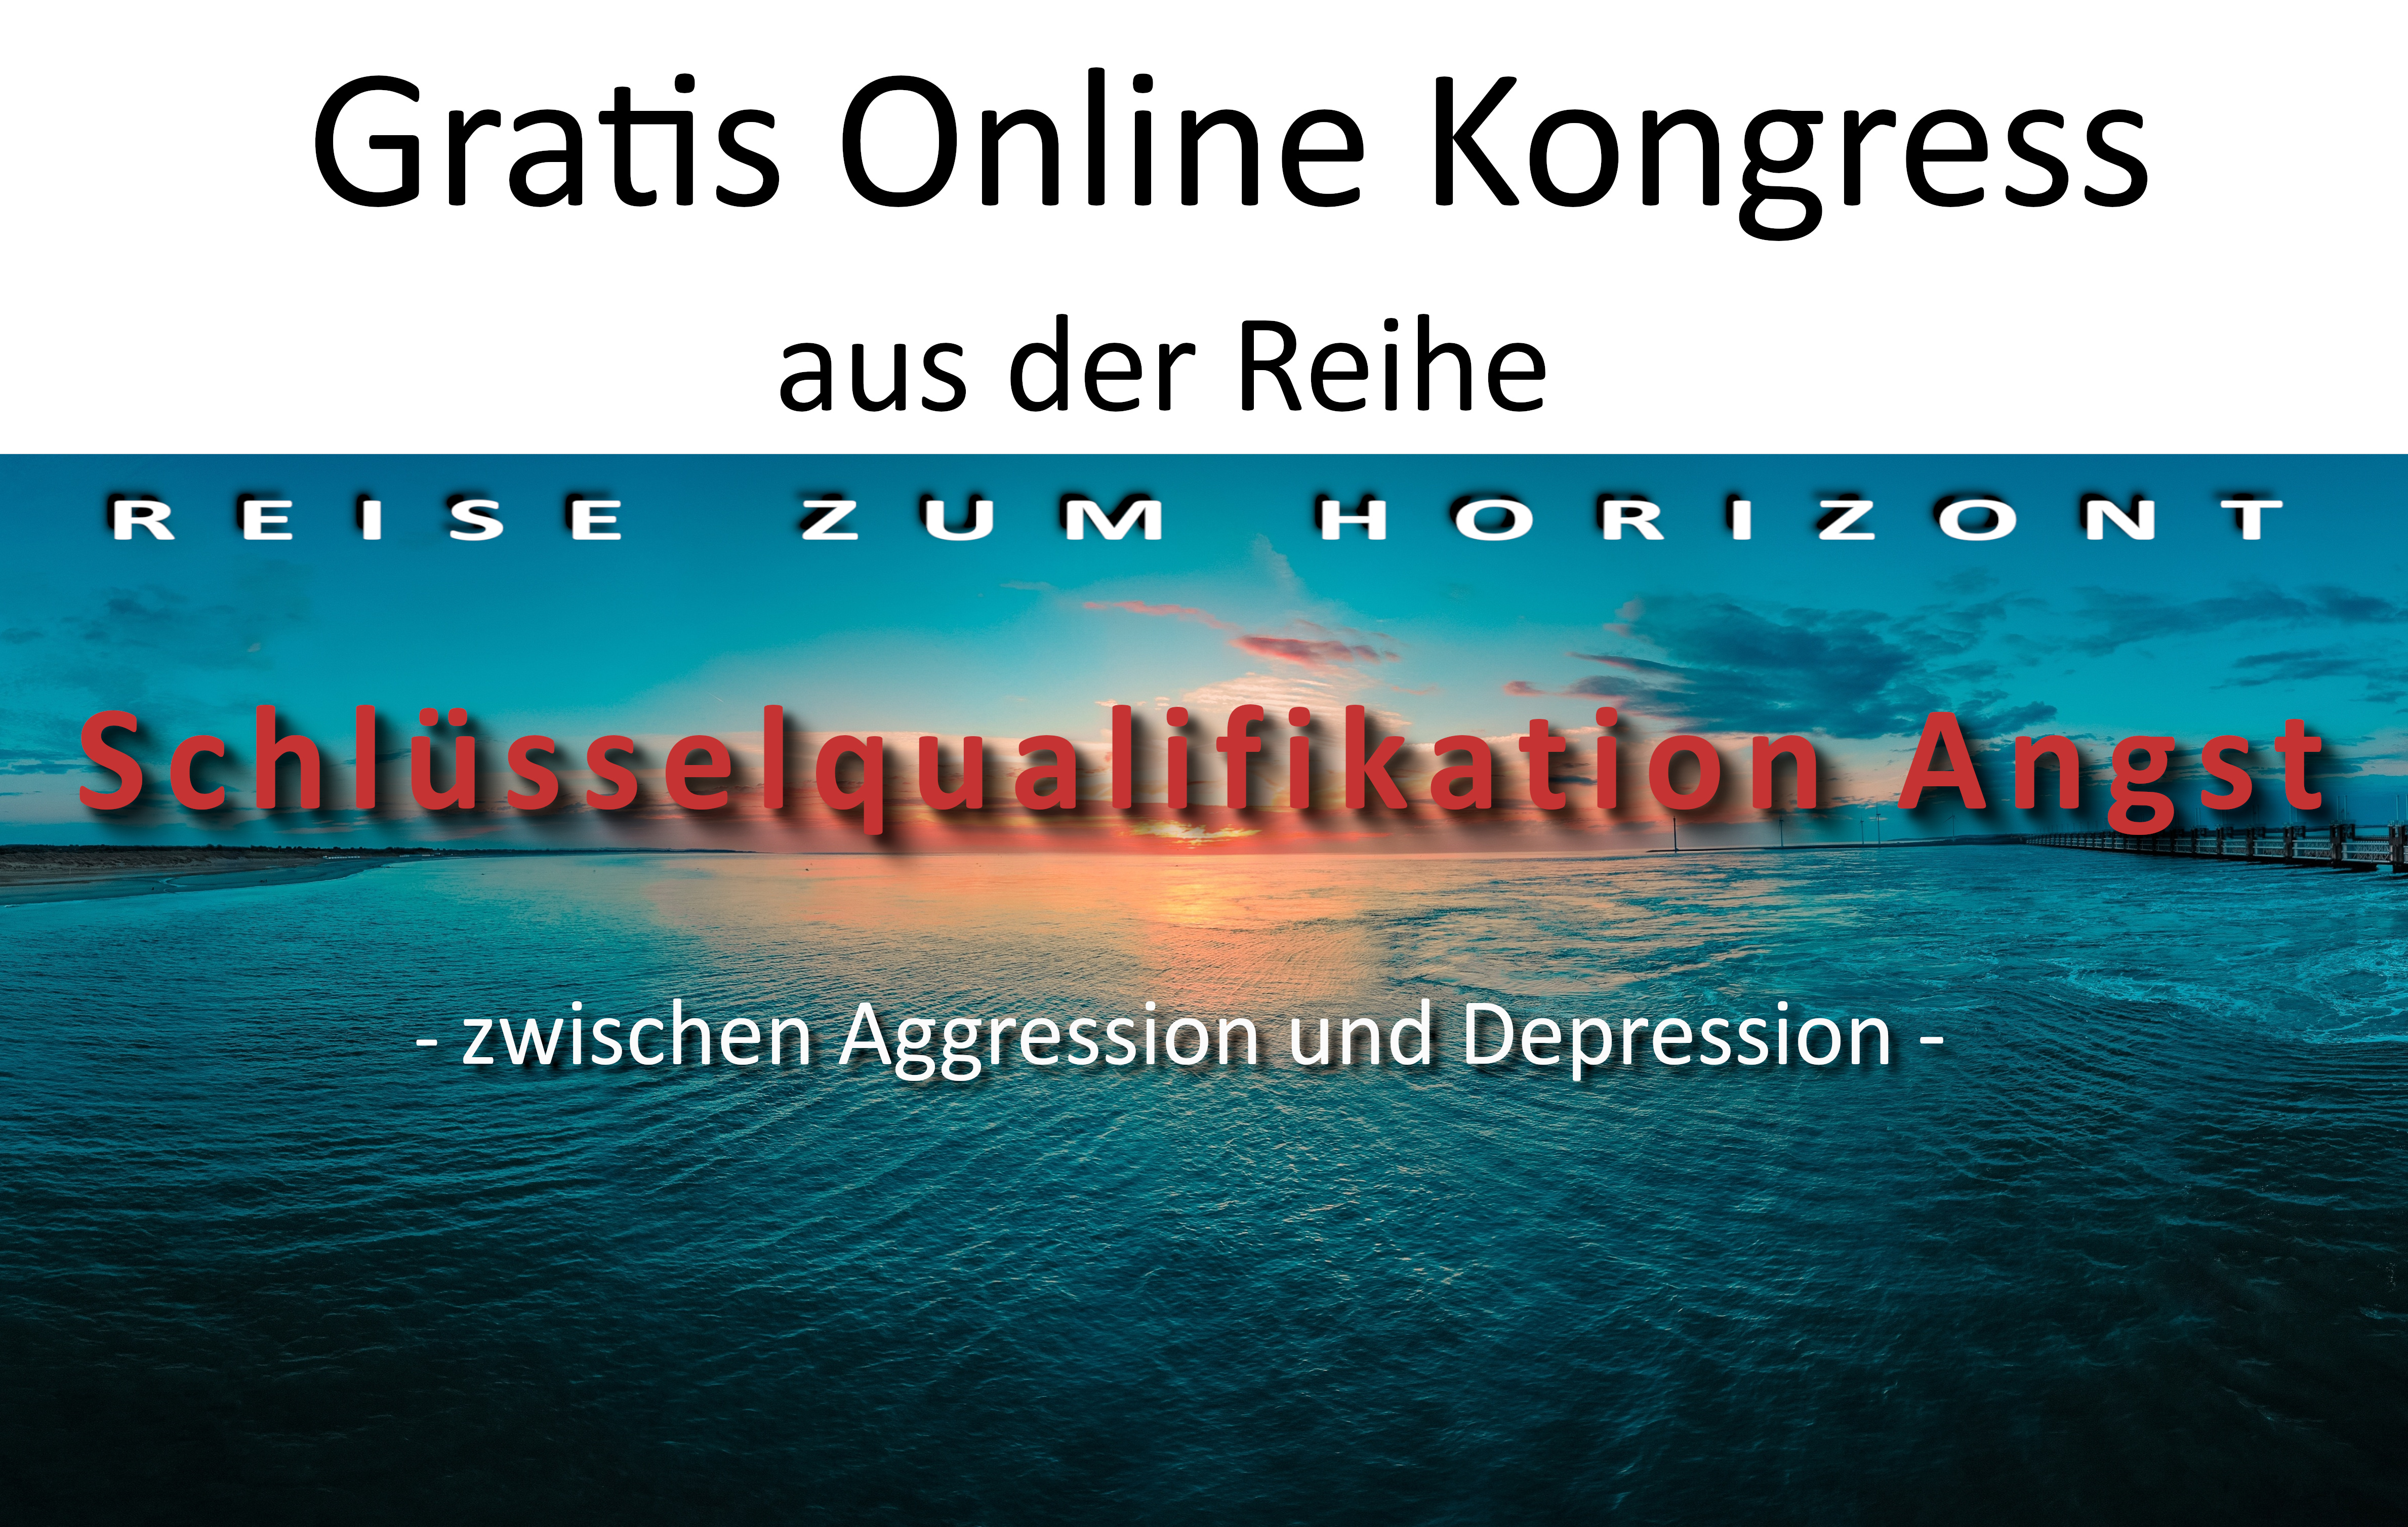 Schl-sselqualifikation-Angst615e9ae27551c